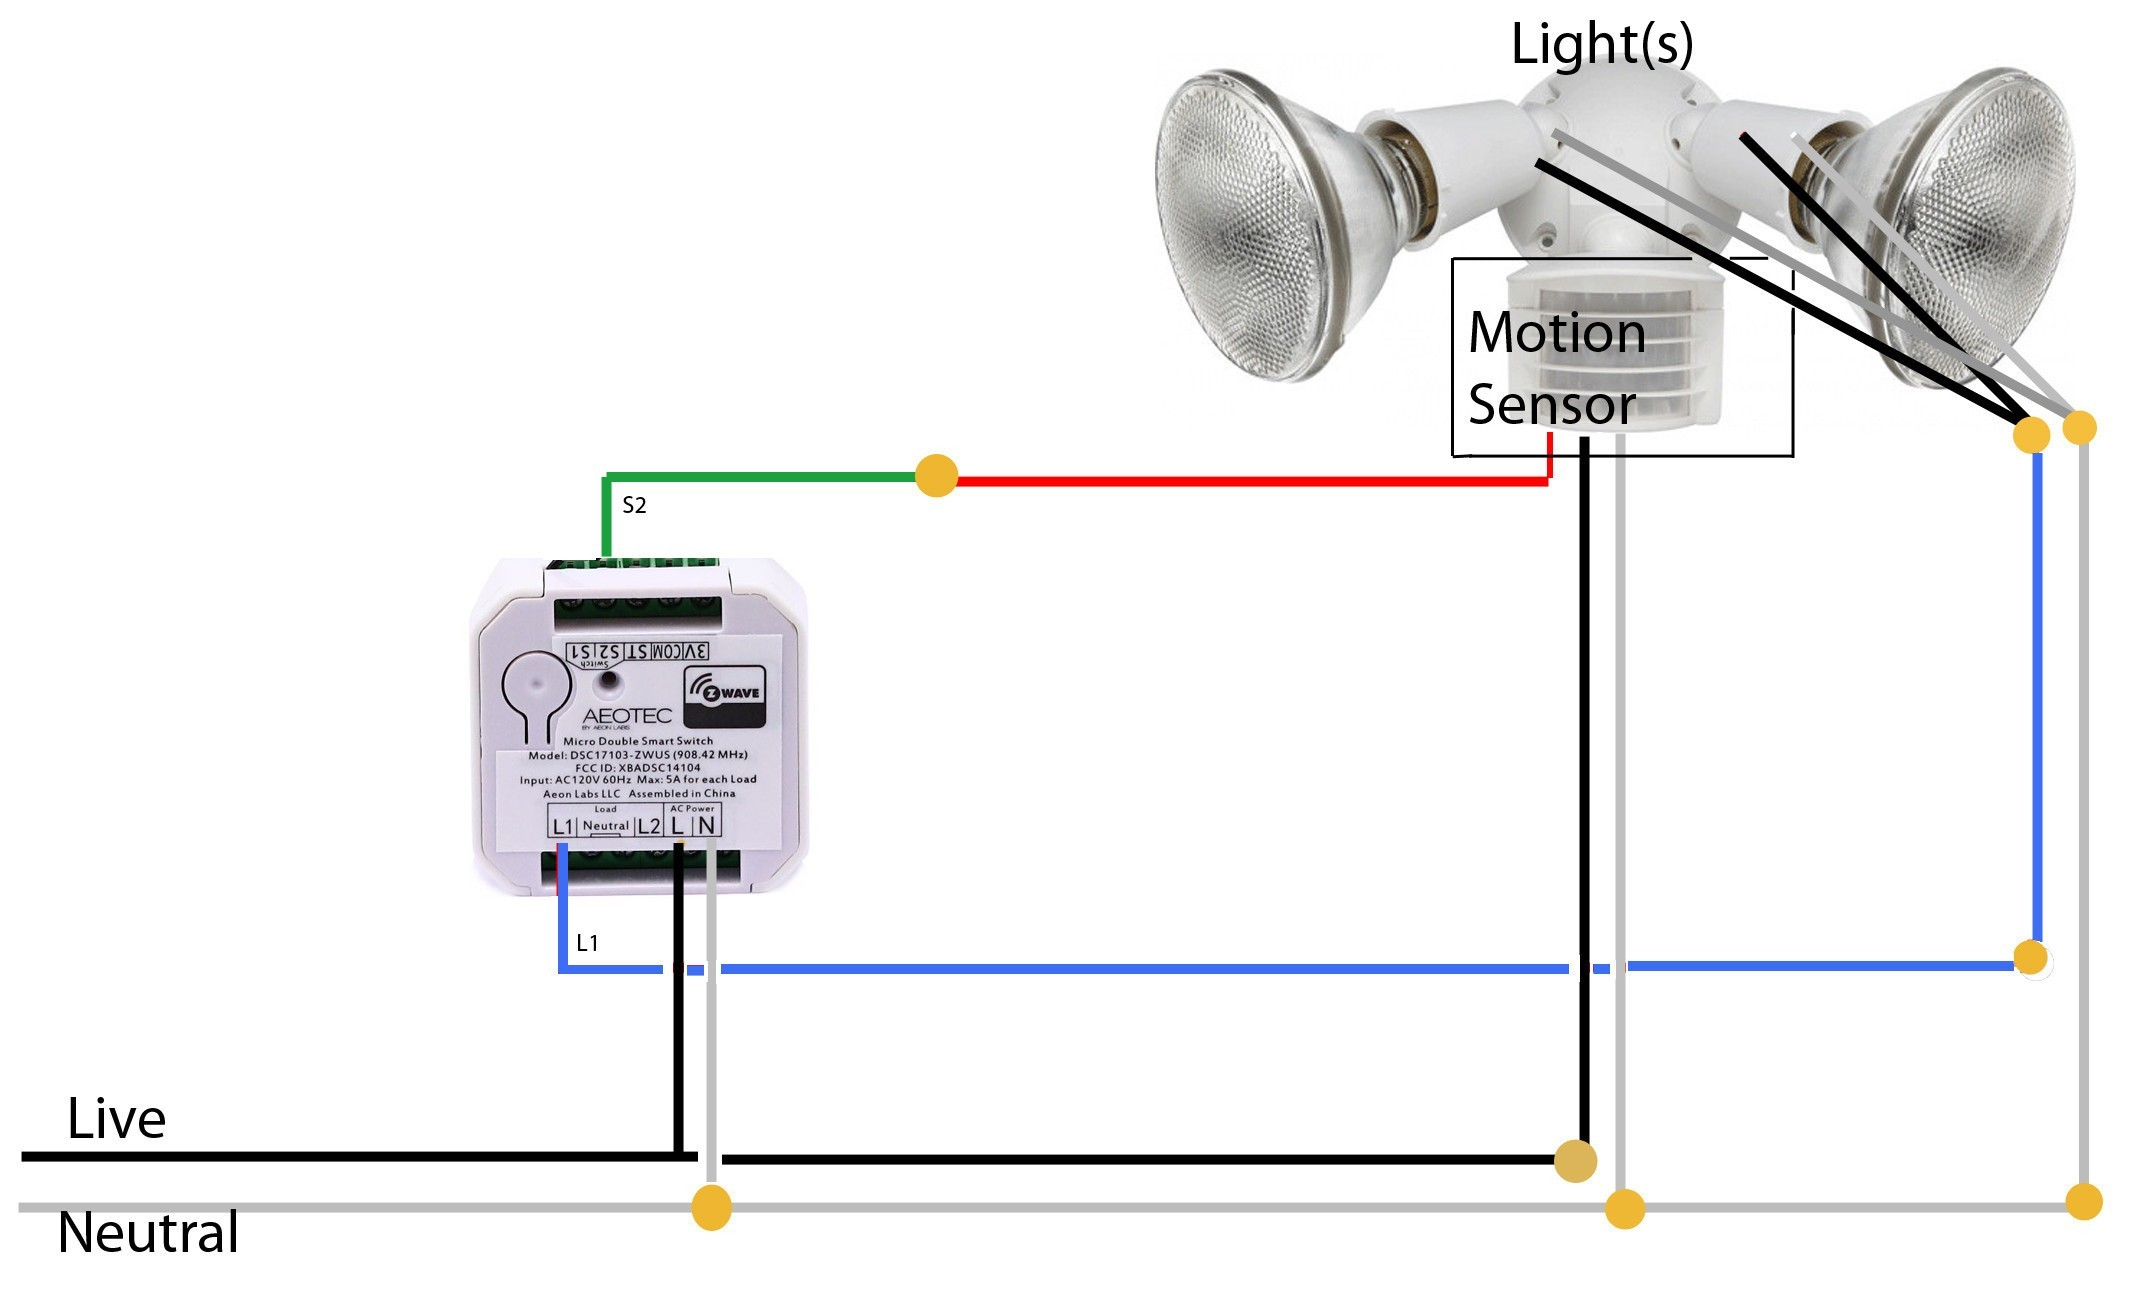 Arlec Motion Sensor Light Wiring Diagram